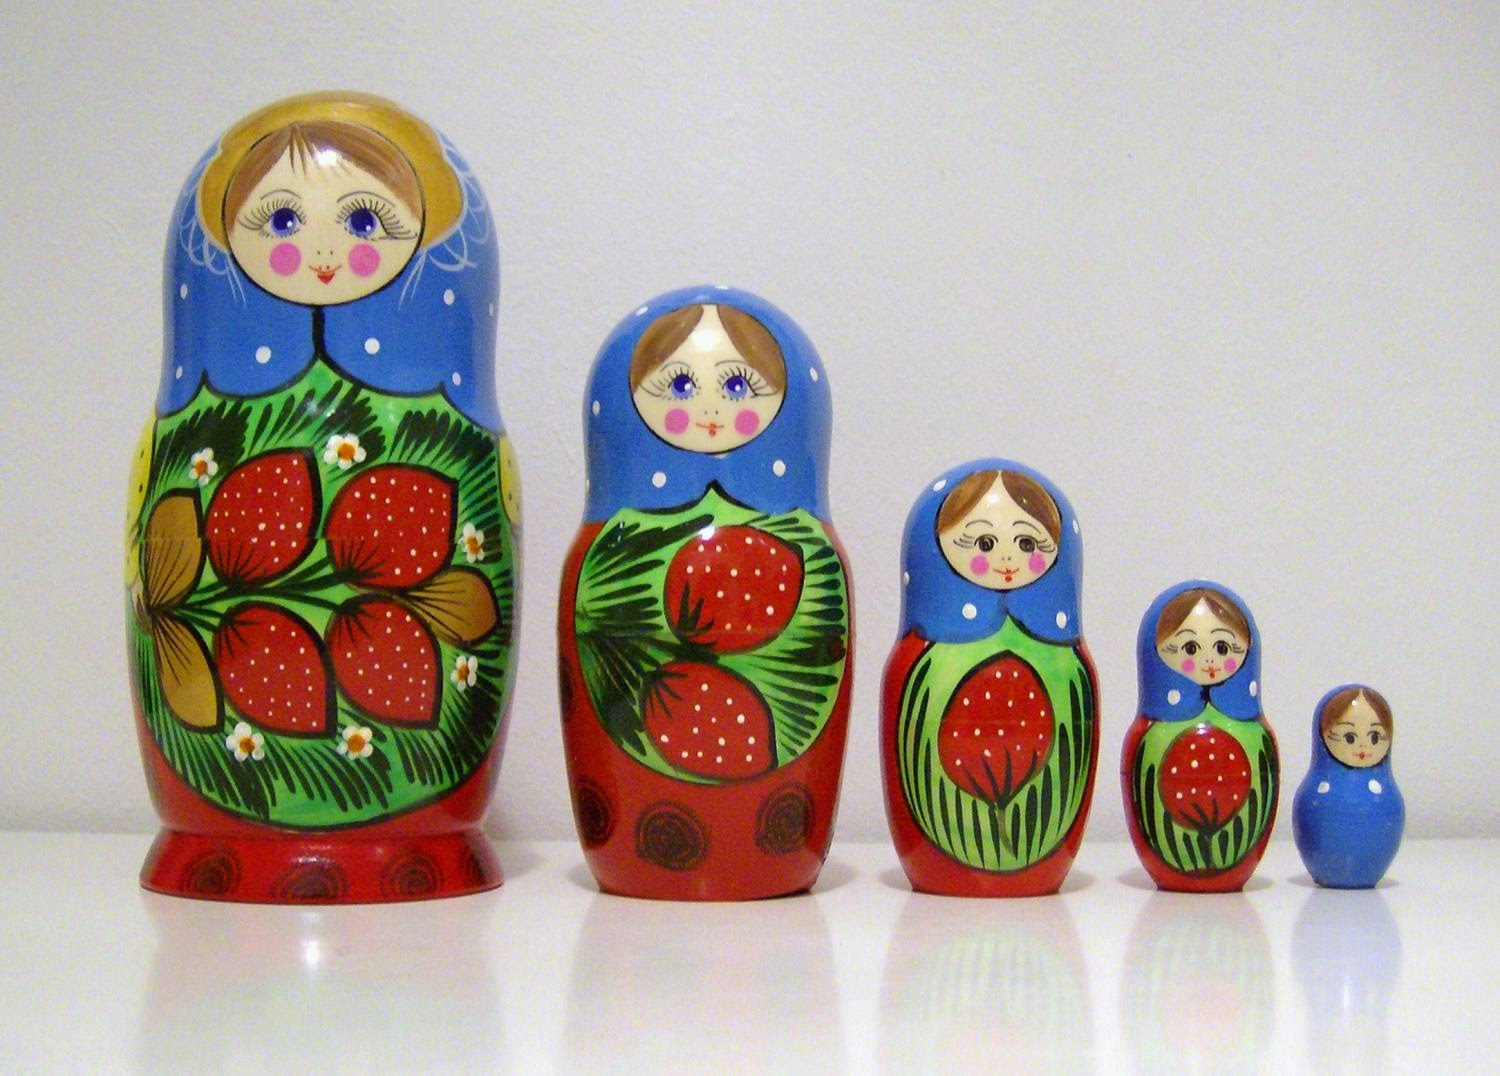 Teisukas station easter gifts from russia matryoshka set in a row one matryoshka includes a set of negle Choice Image